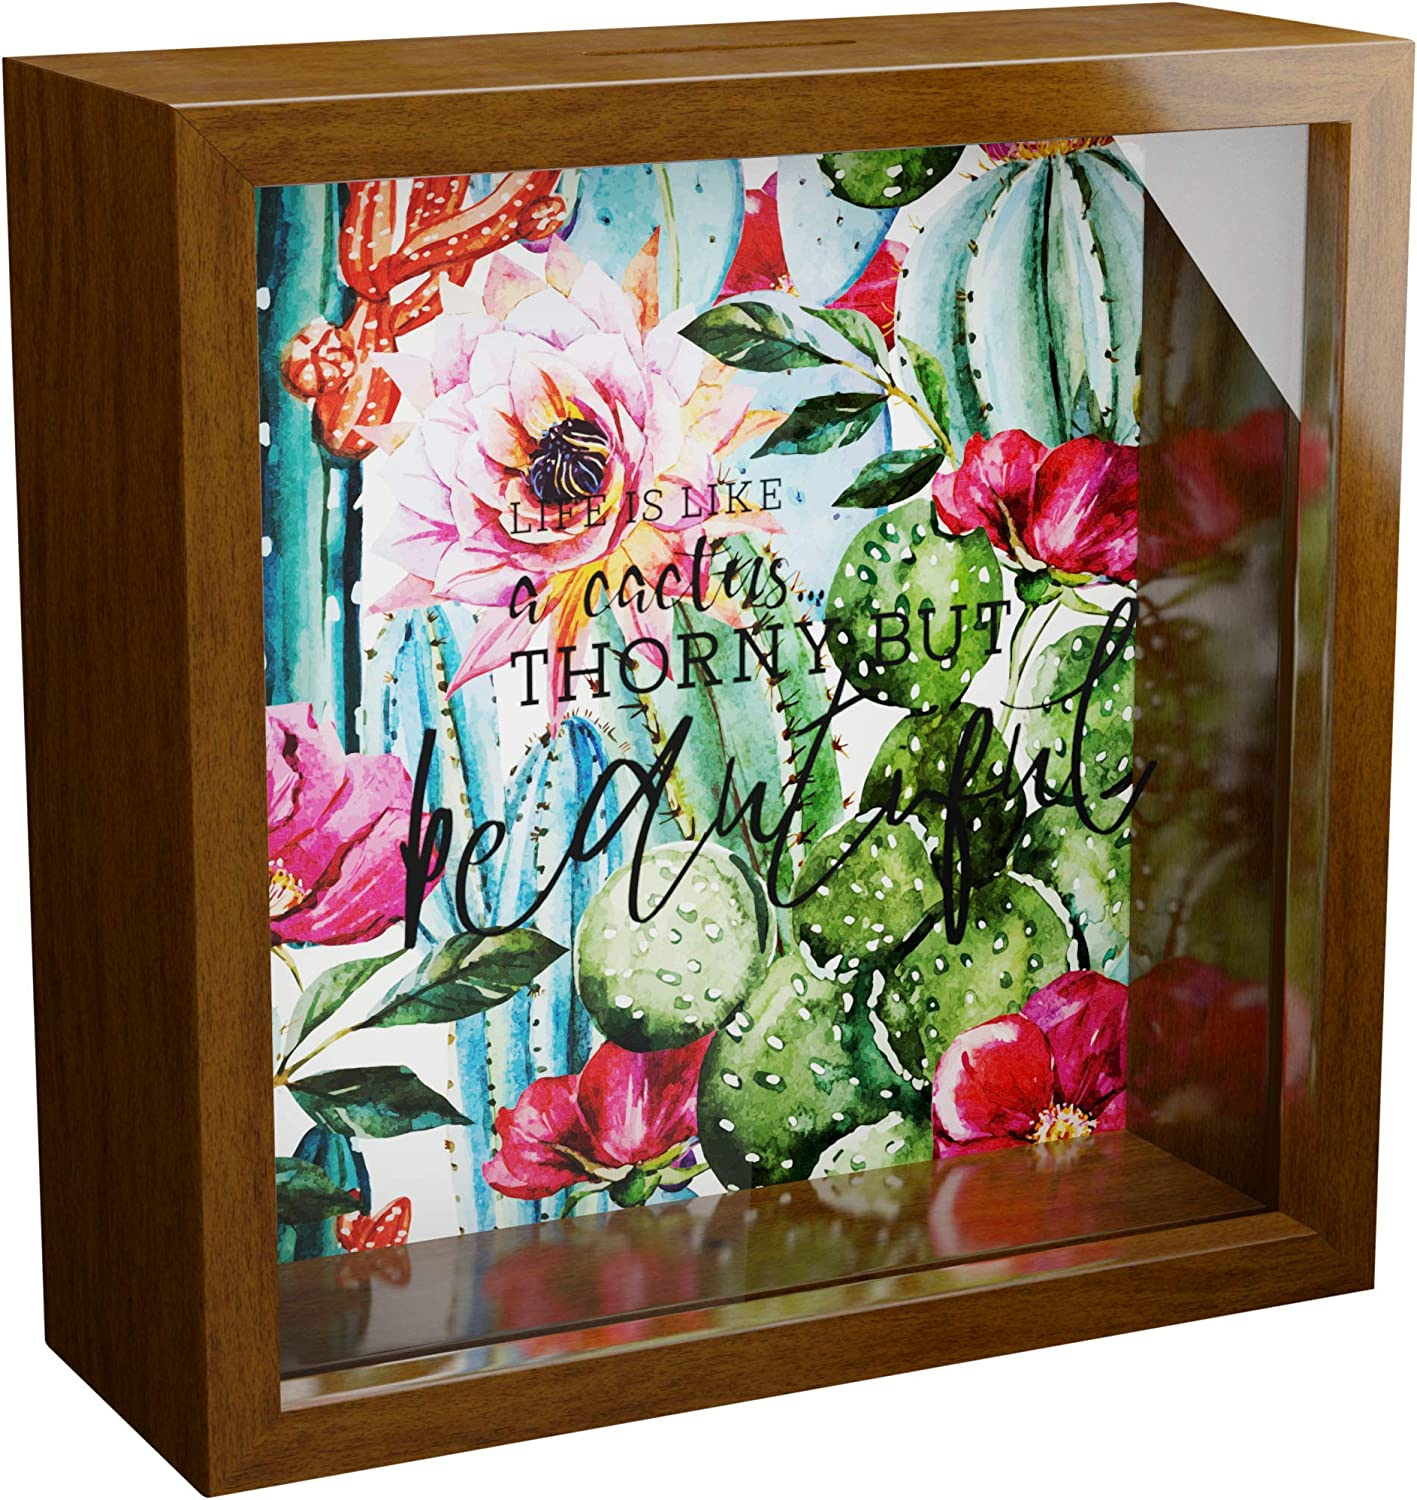 Cactus Gifts | 6x6x2 Memorabilia Shadow Box for Cactus Lovers | Decorative Wooden Keepsake Frame for Girls | Ideal Plant Decorations for Bedroom | Unique Cactus Wall Decor for Home & Kitchen